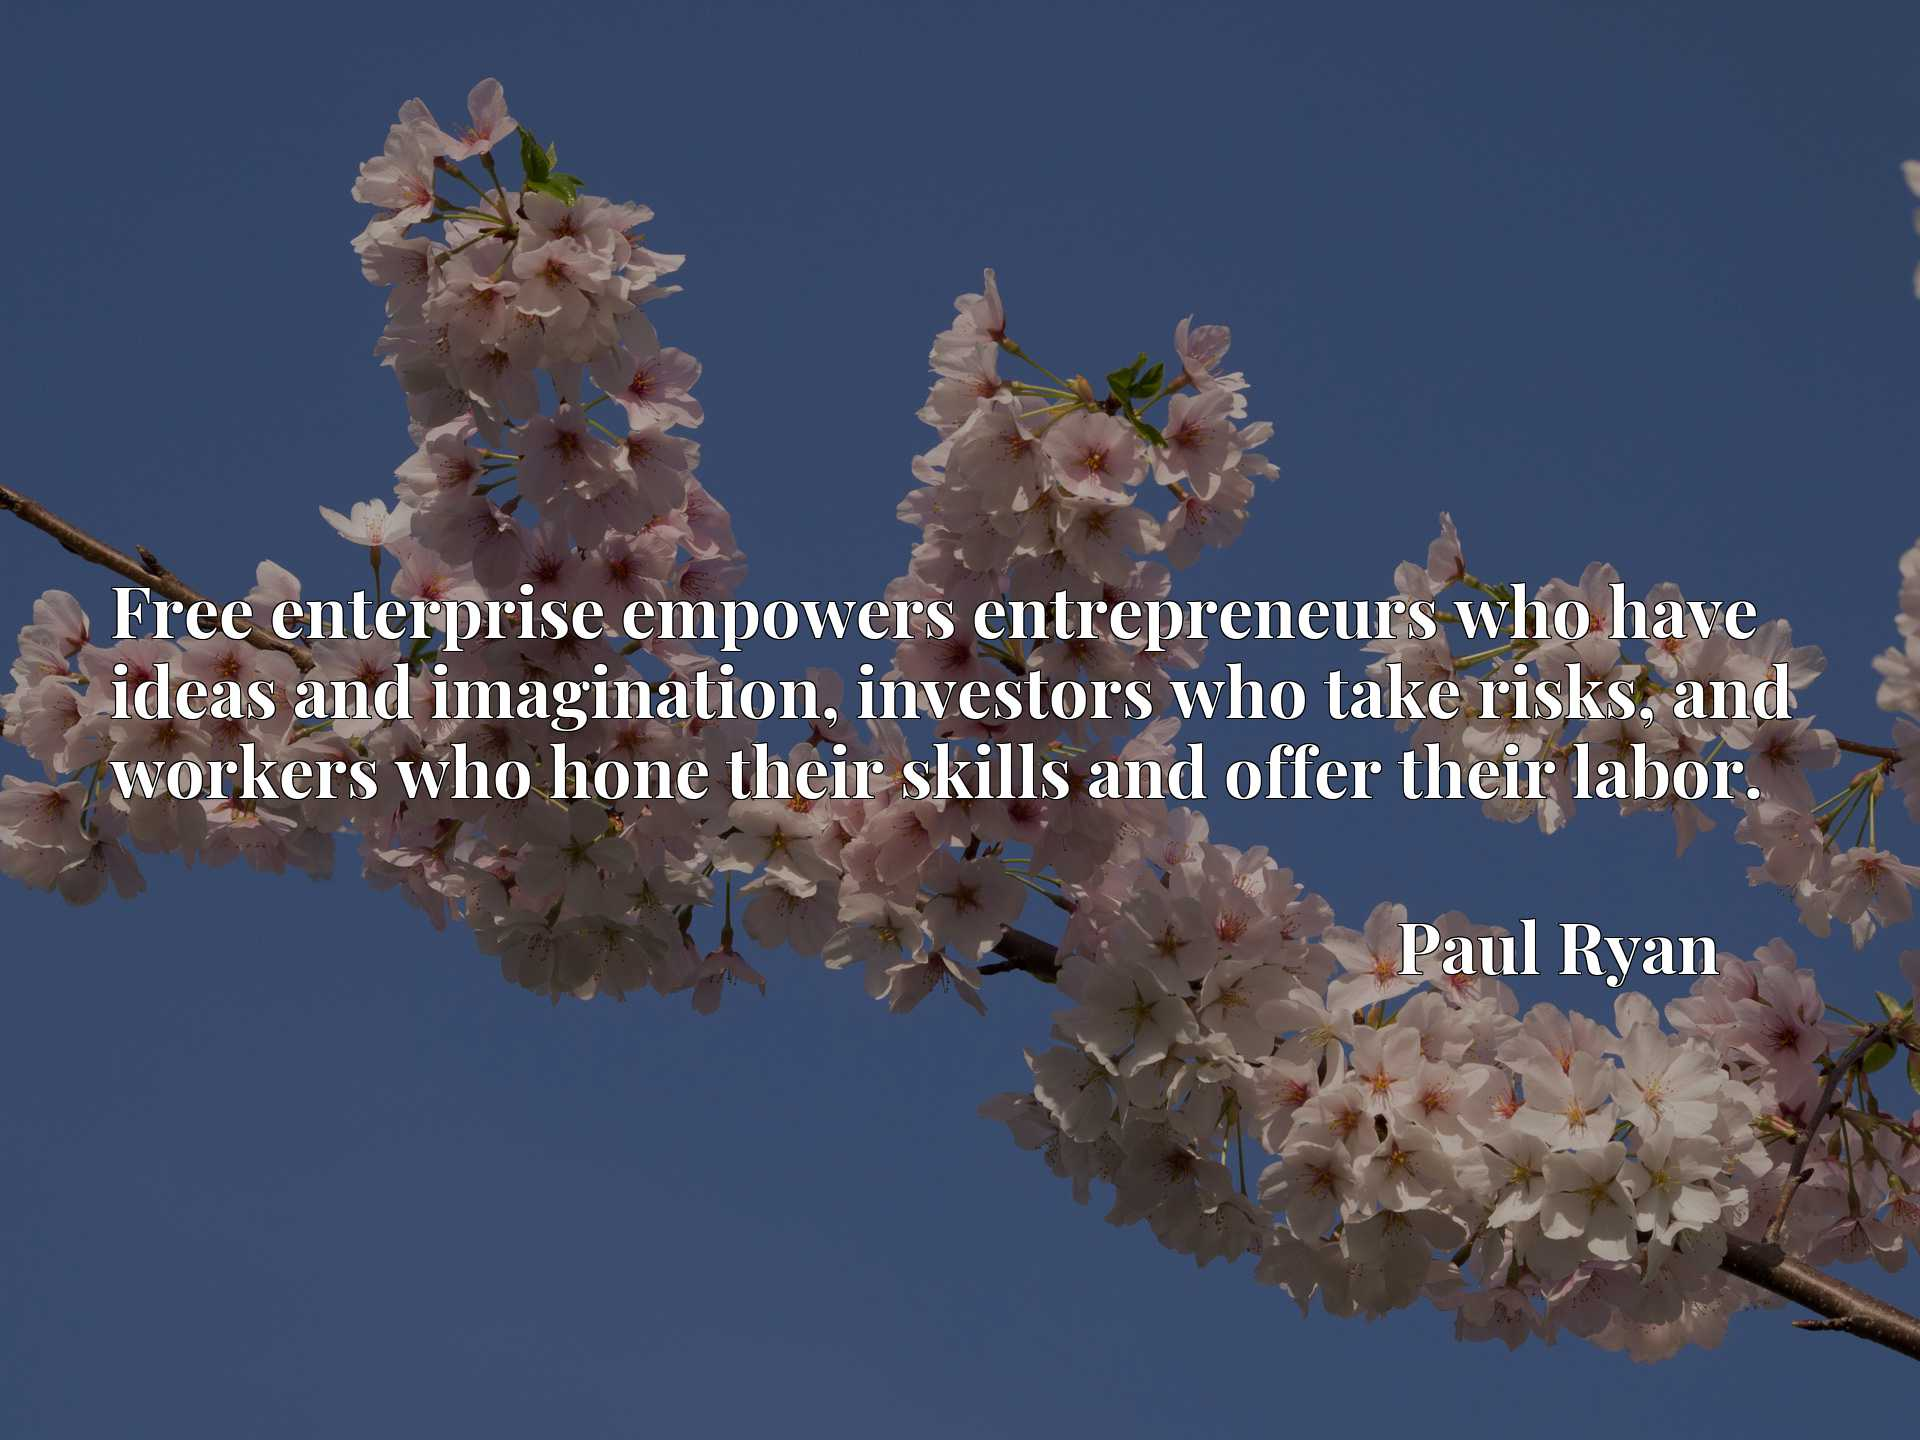 Quote Picture :Free enterprise empowers entrepreneurs who have ideas and imagination, investors who take risks, and workers who hone their skills and offer their labor.